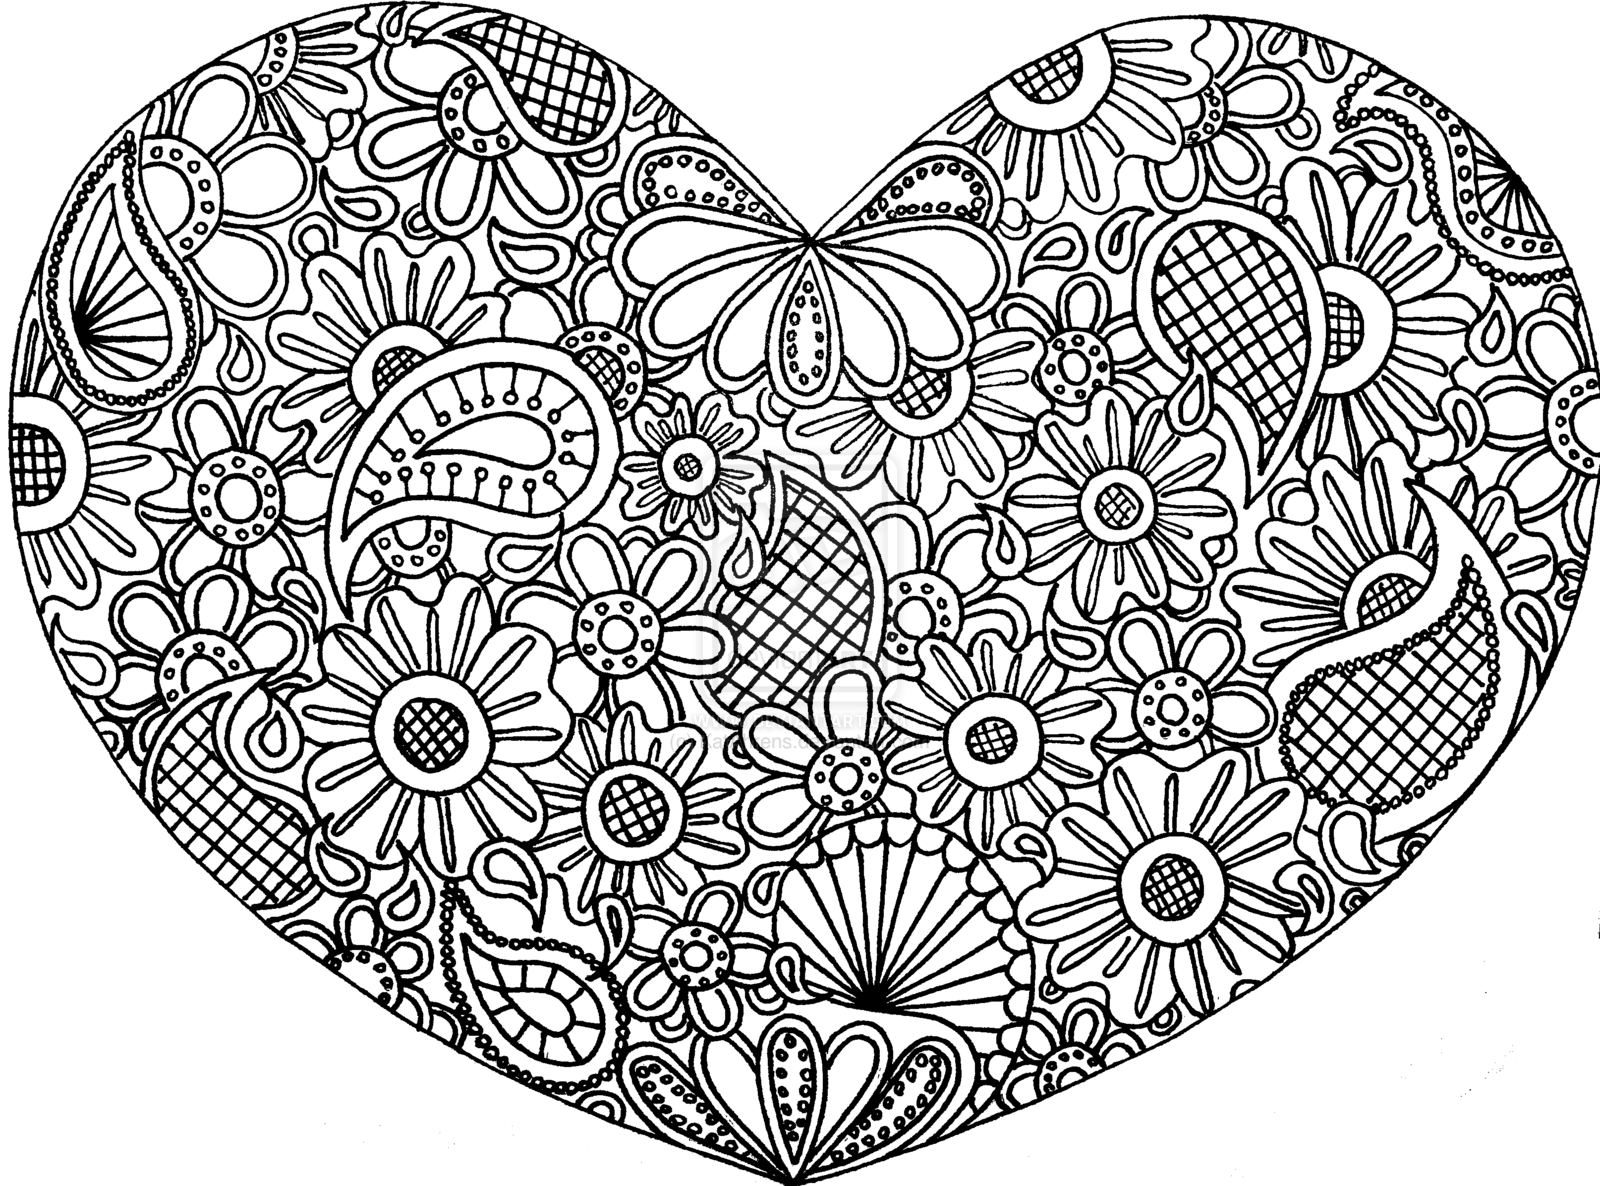 Doodle Art Coloring Pages at GetDrawings.com | Free for personal use ...